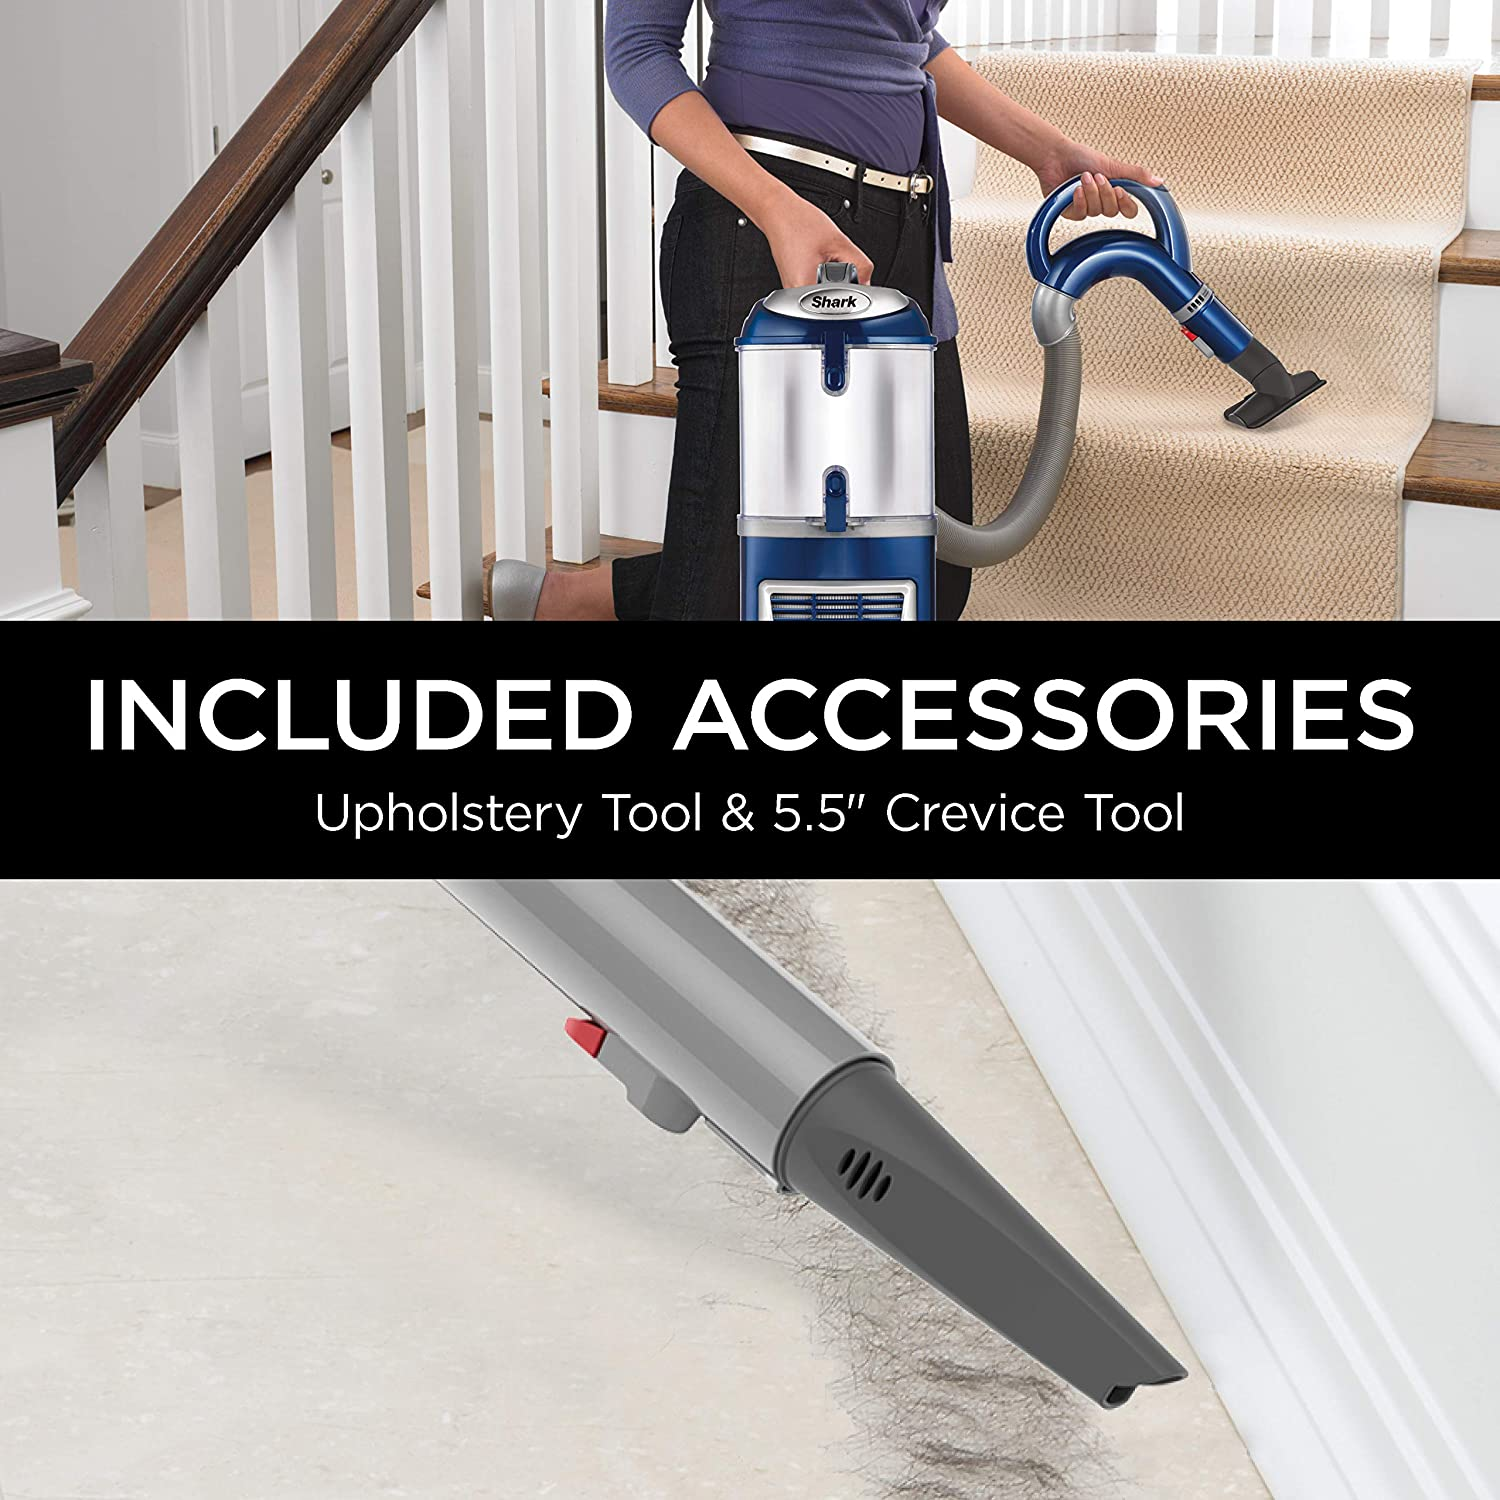 Best Shark Vacuums Tested & Reviewed 33